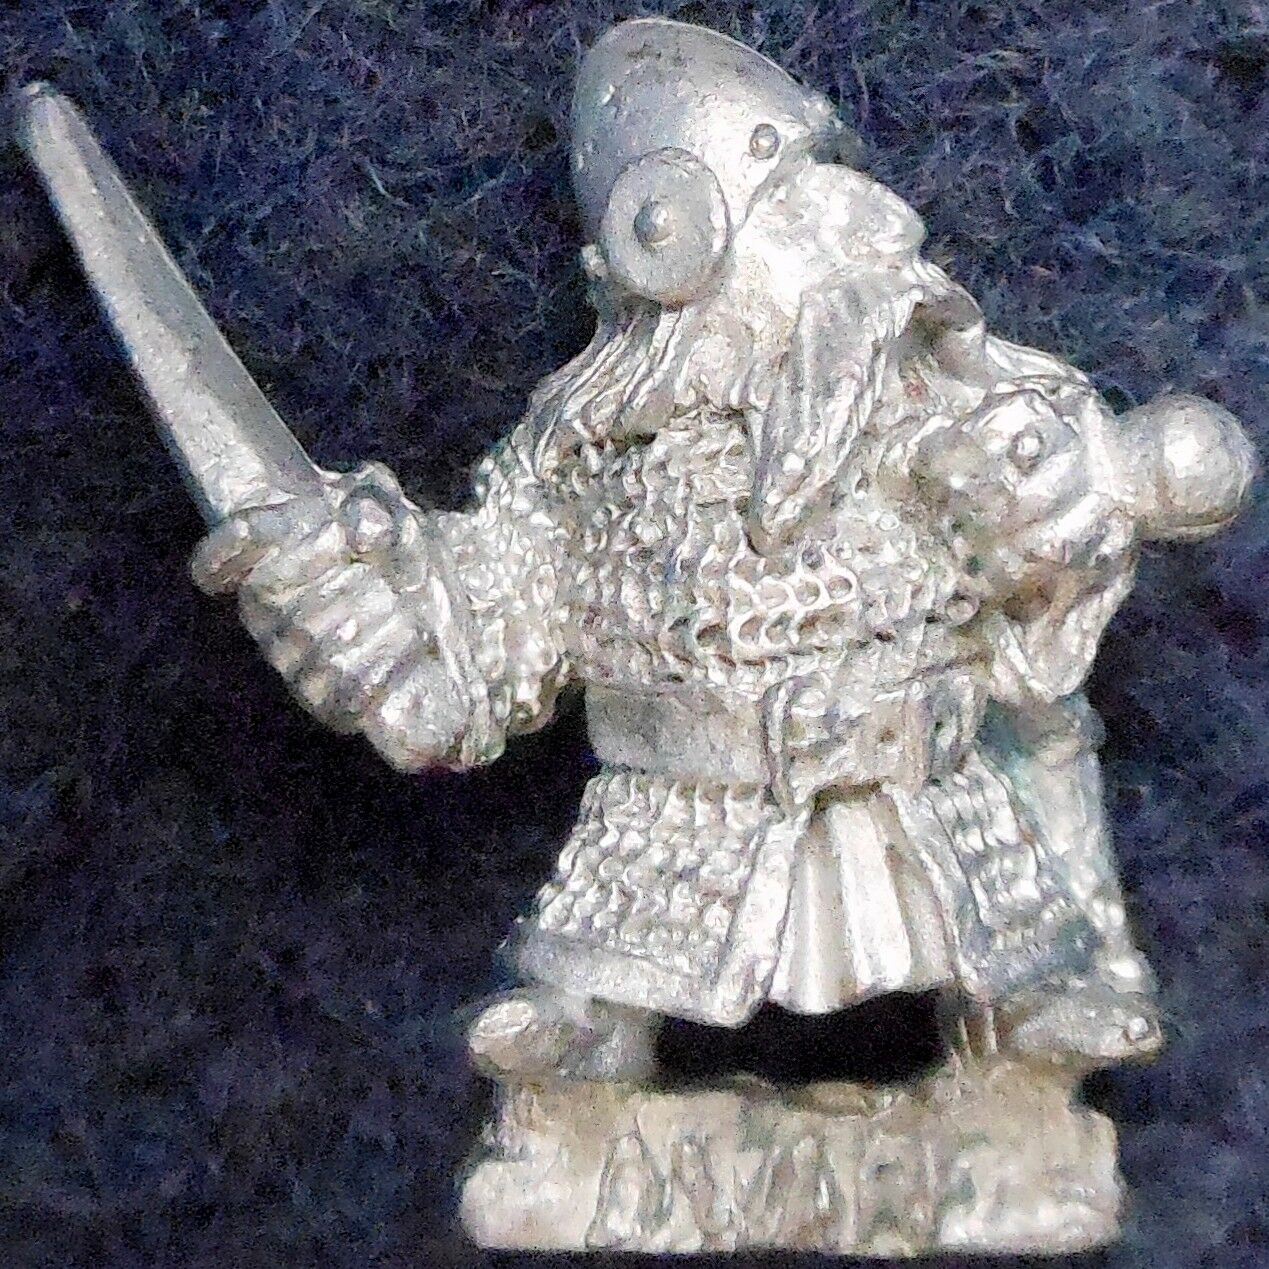 1985 Dwarf ME33 Alternative Sword 2 Lord of the Rings Variant Citadel AD&D LOTR